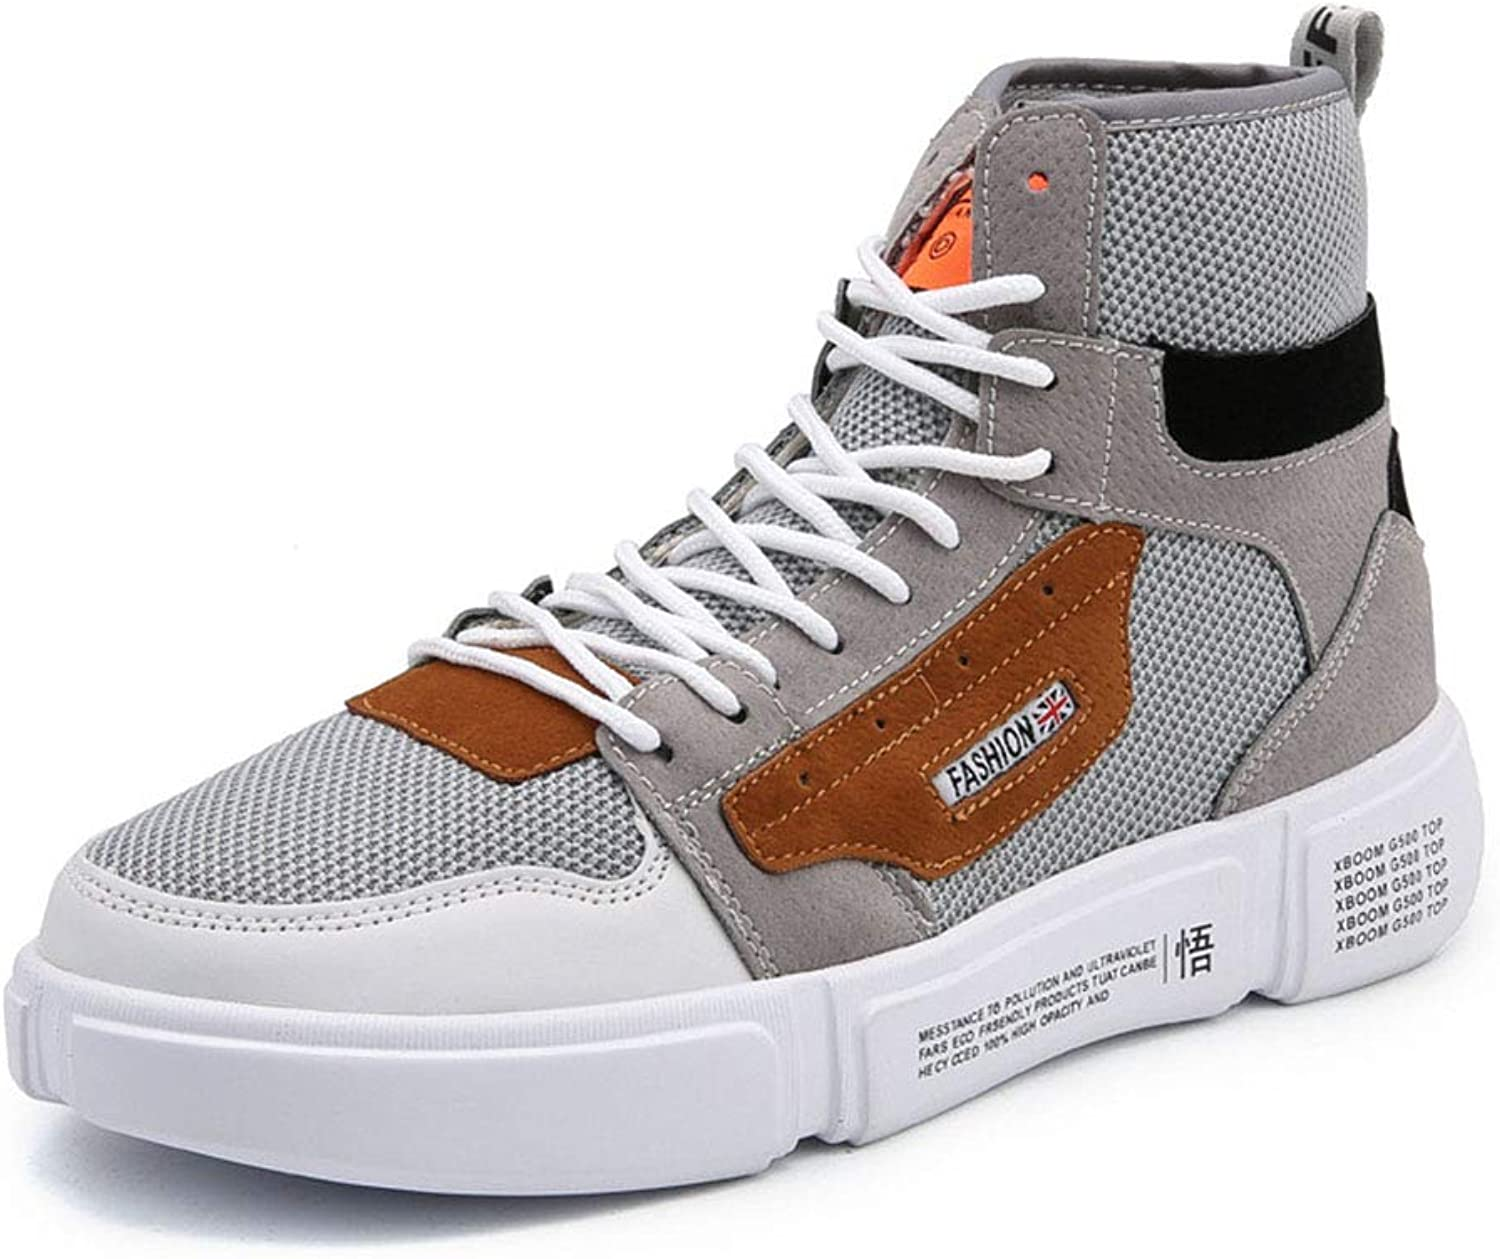 Men's shoes Mesh High-Top Sneakers Fall & Winter New Sports shoes, Fashion Lace Up Deck shoes Outdoor Hiking shoes Trail Running shoes,C,40